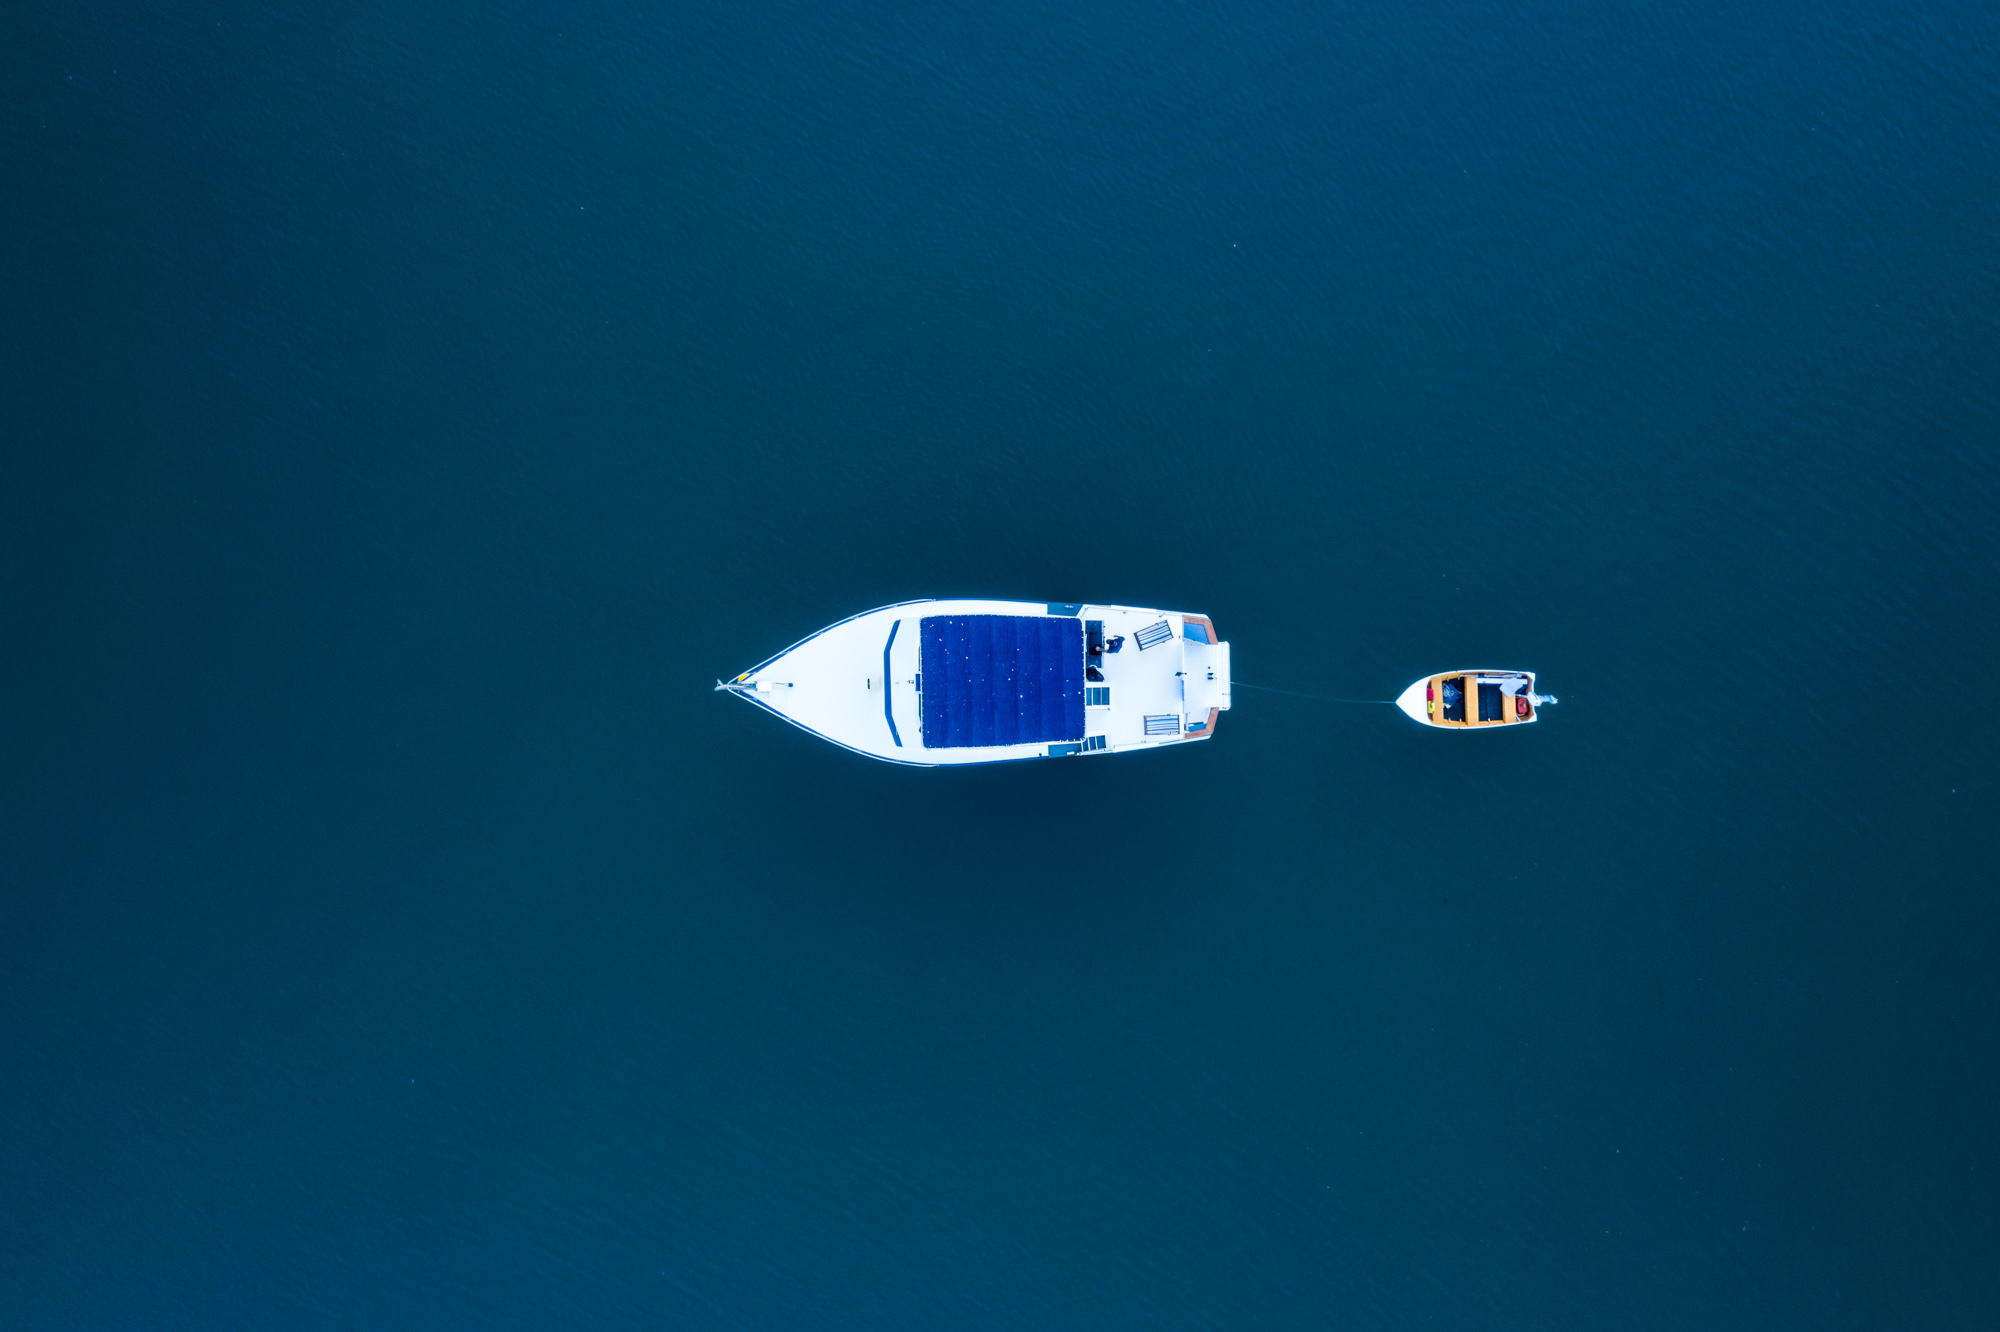 Boats From Above